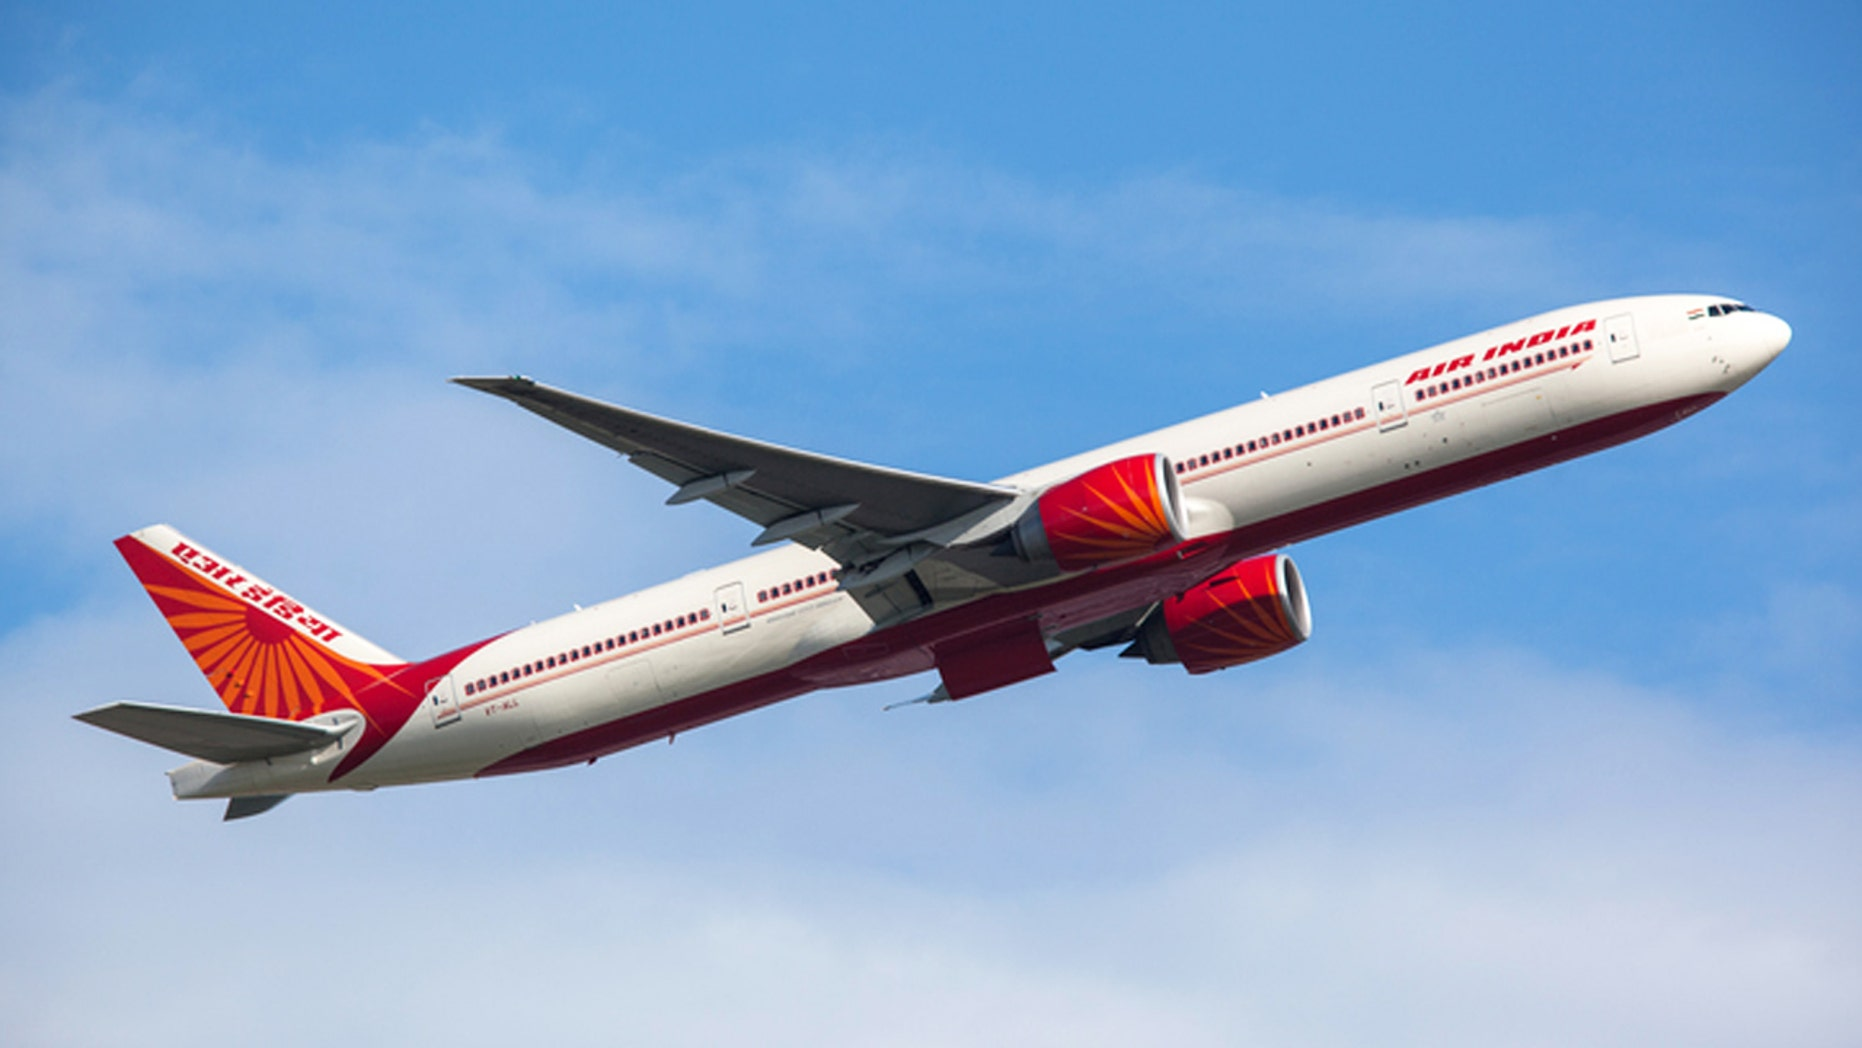 Frankfurt, Germany - June 3, 2010: Air India Boeing 777-300ER taking off from the Frankfurt International Airport.